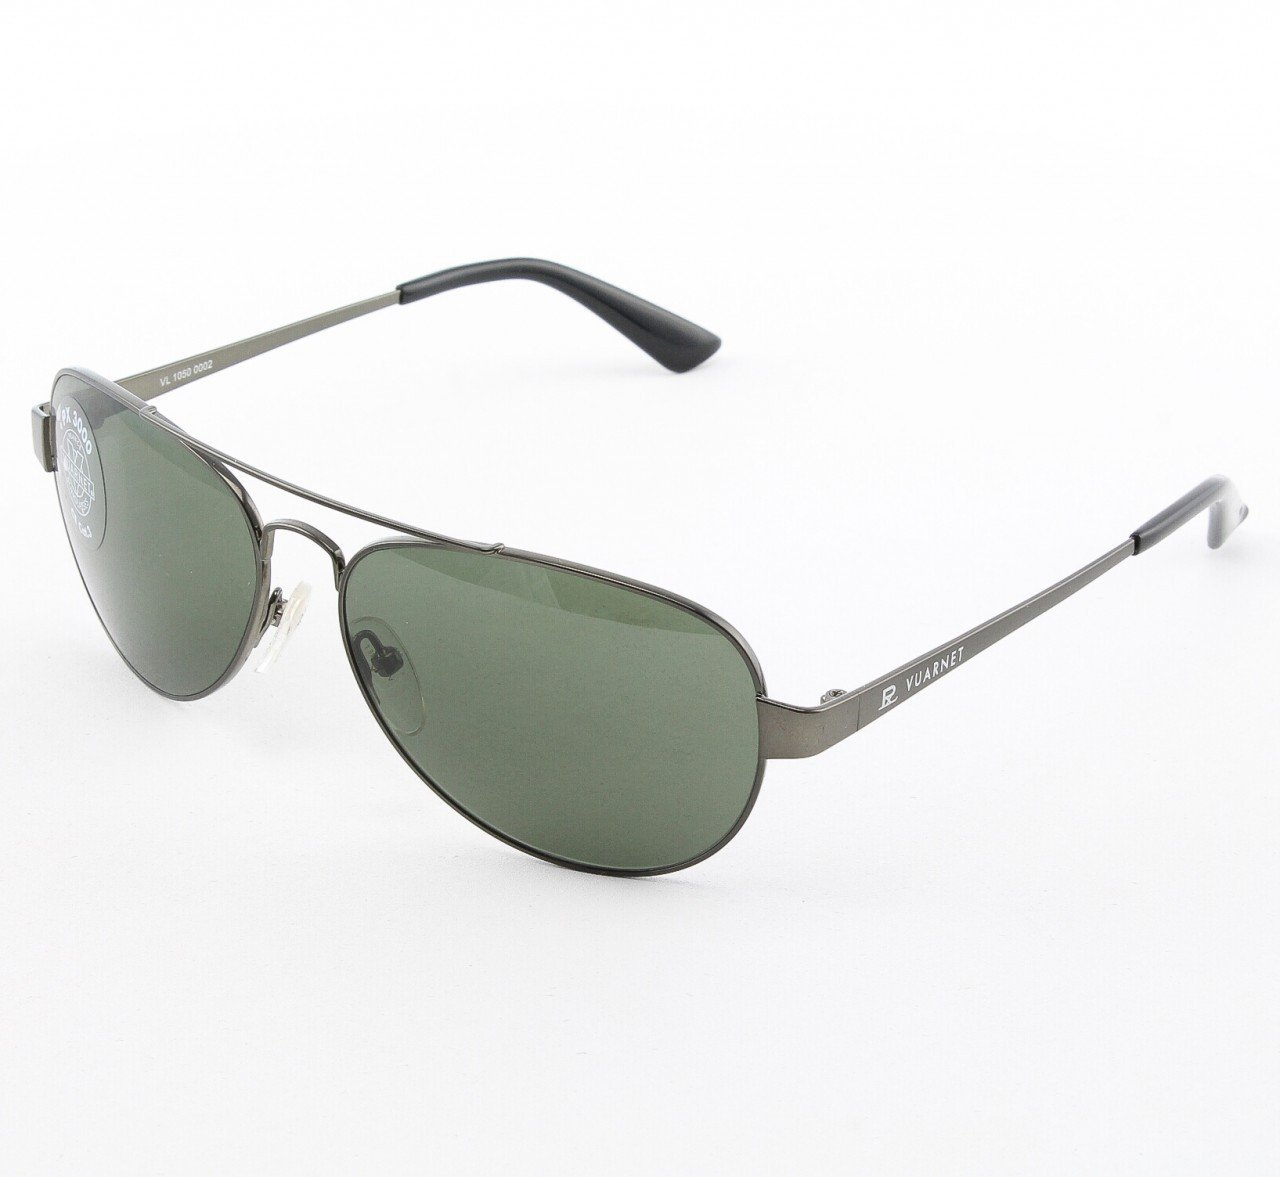 Vuarnet VL 1050 Uni Aviator Sunglasses Col. 0002 1121 Silver with Green Grey PX3000 Lenses